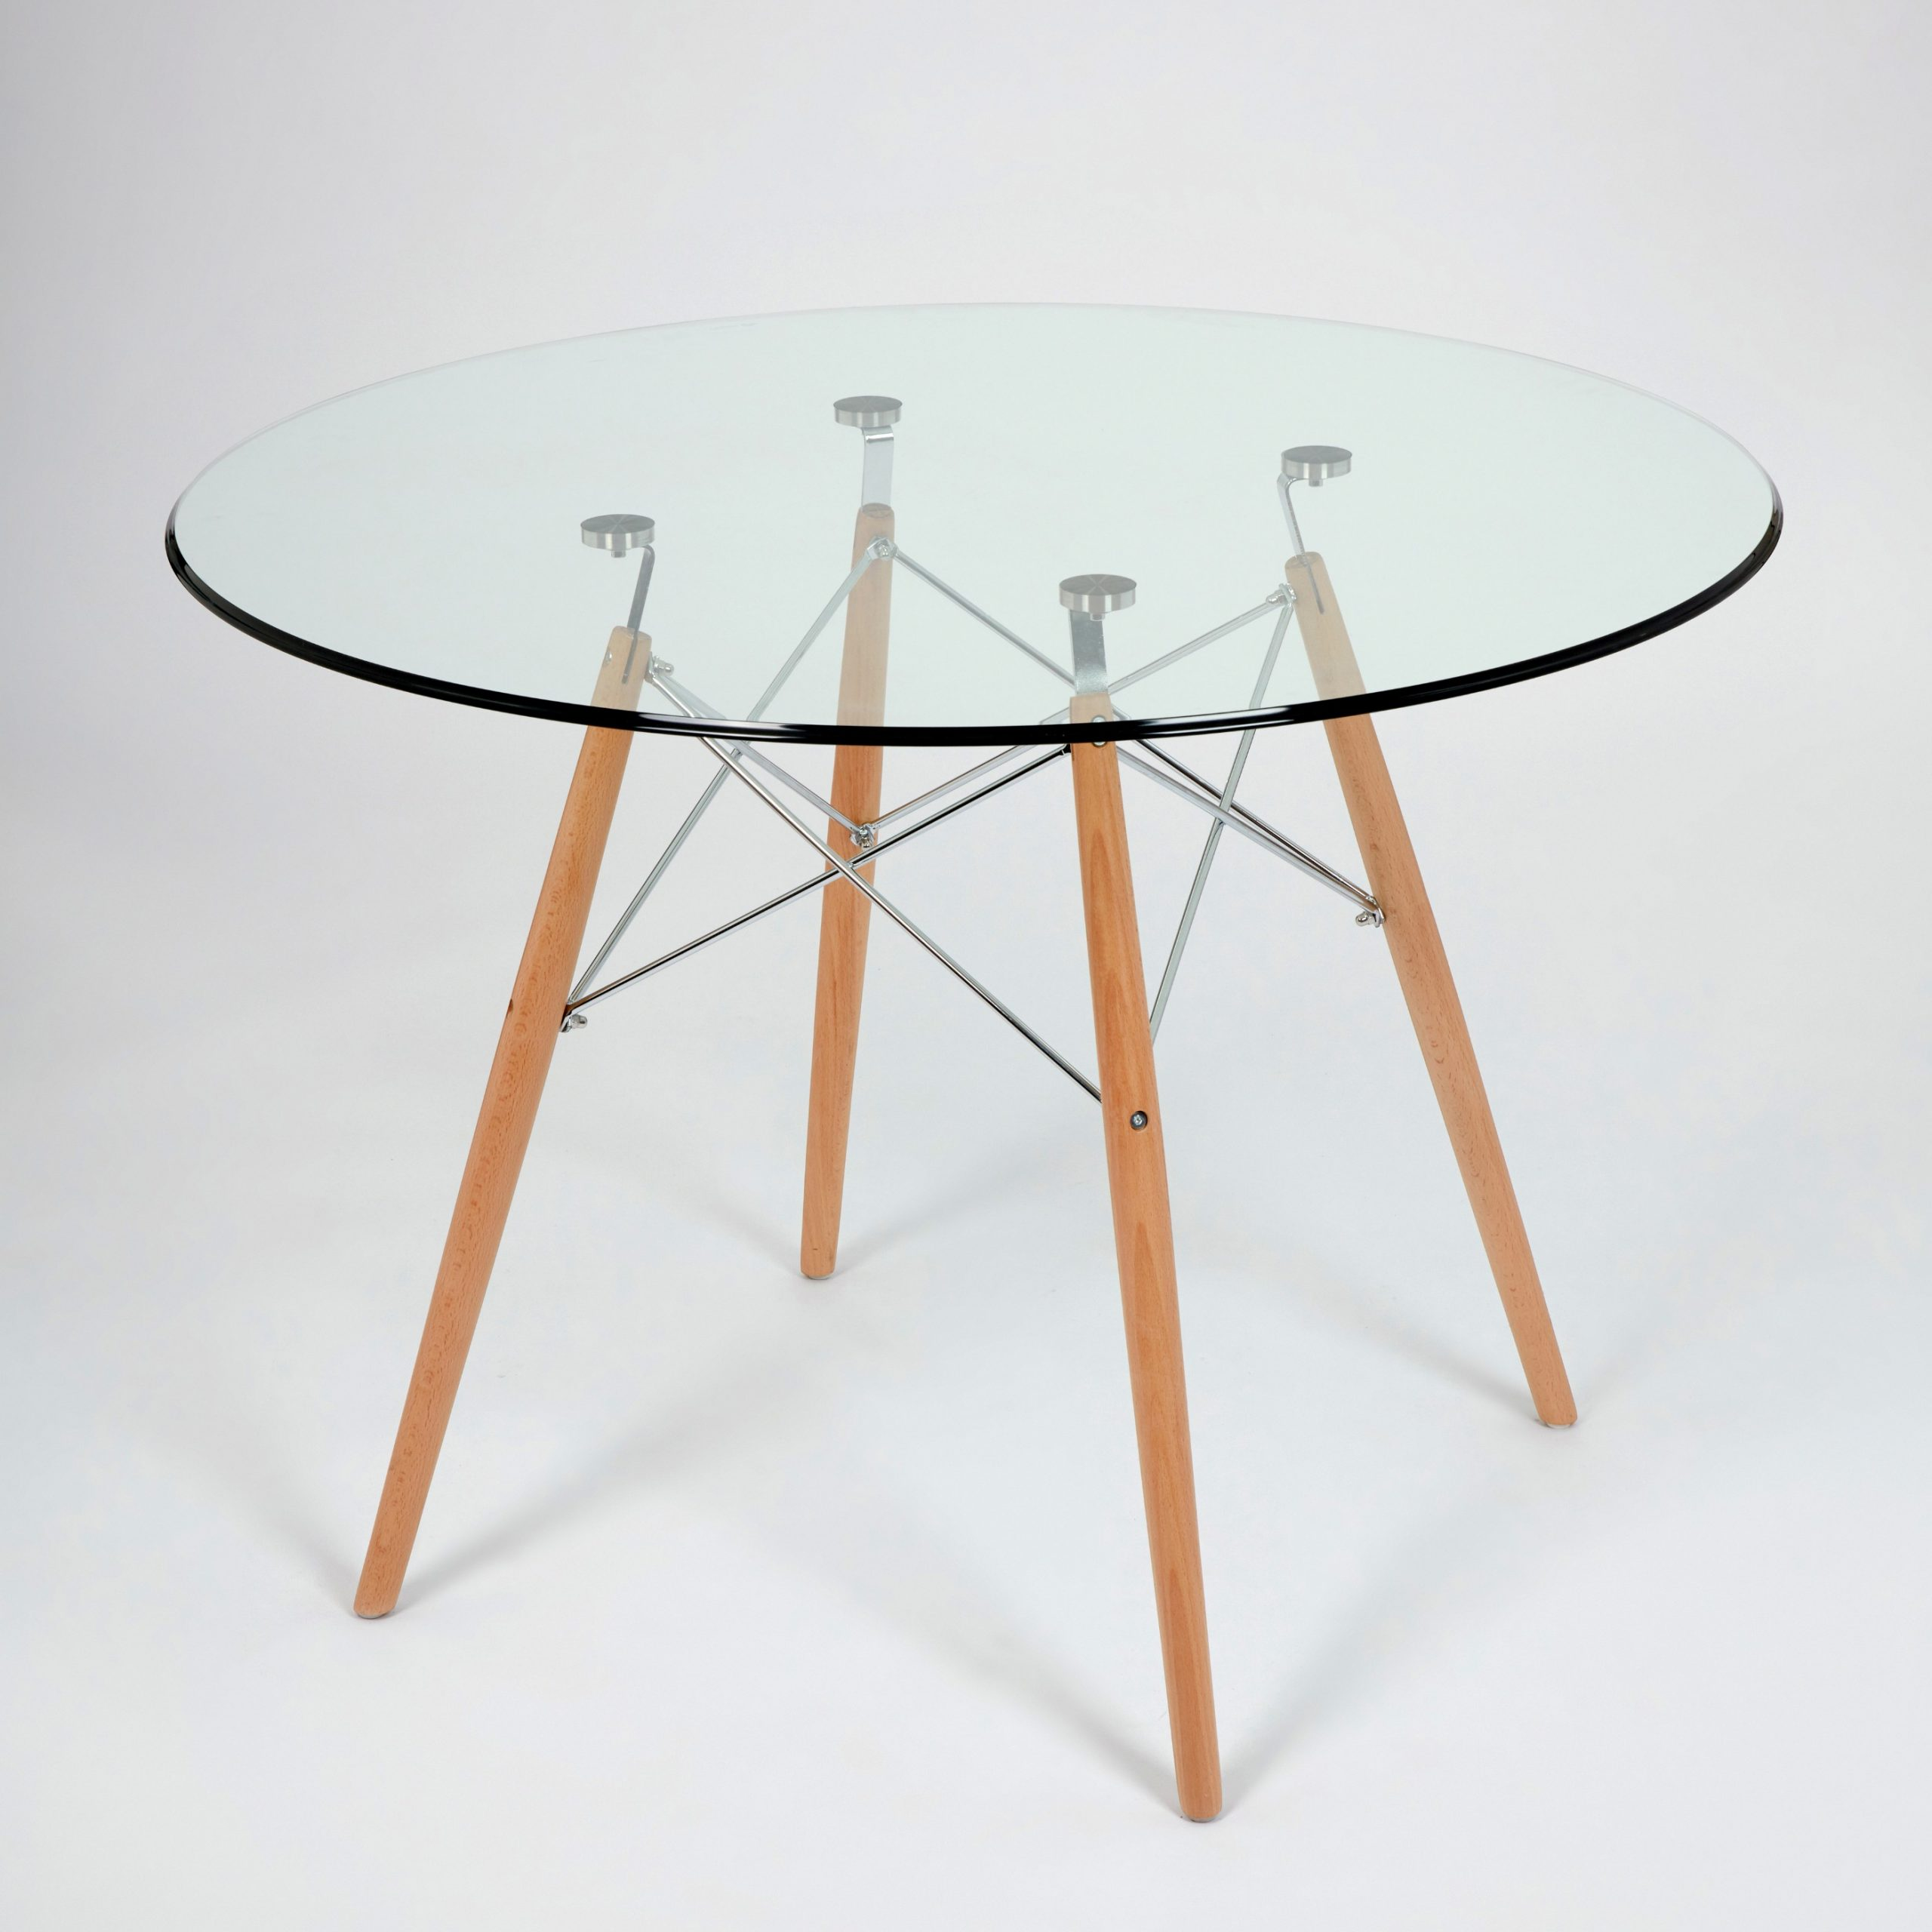 Eames Style Dining Tables With Chromed Leg And Tempered Glass Top with 2019 Dining Glass Table With Beechwood Legs (Size: 100Cm